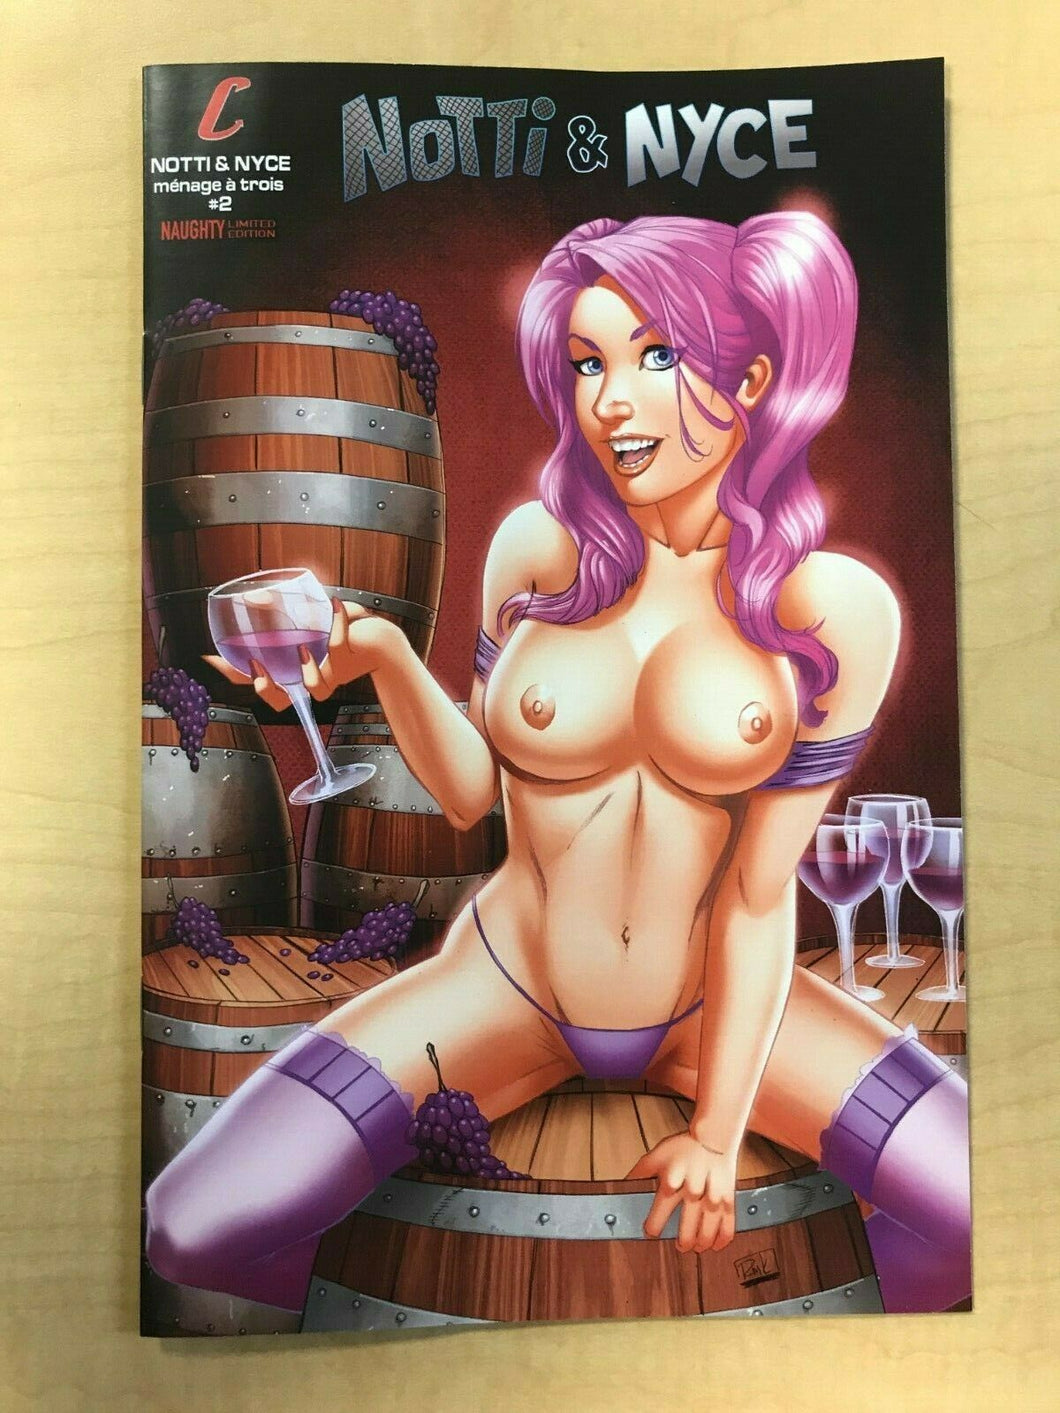 Notti & Nyce Ménage A Trois #2 NAUGHTY TOPLESS Variant Cover by RYAN KINCAID Counterpoint Entertainment